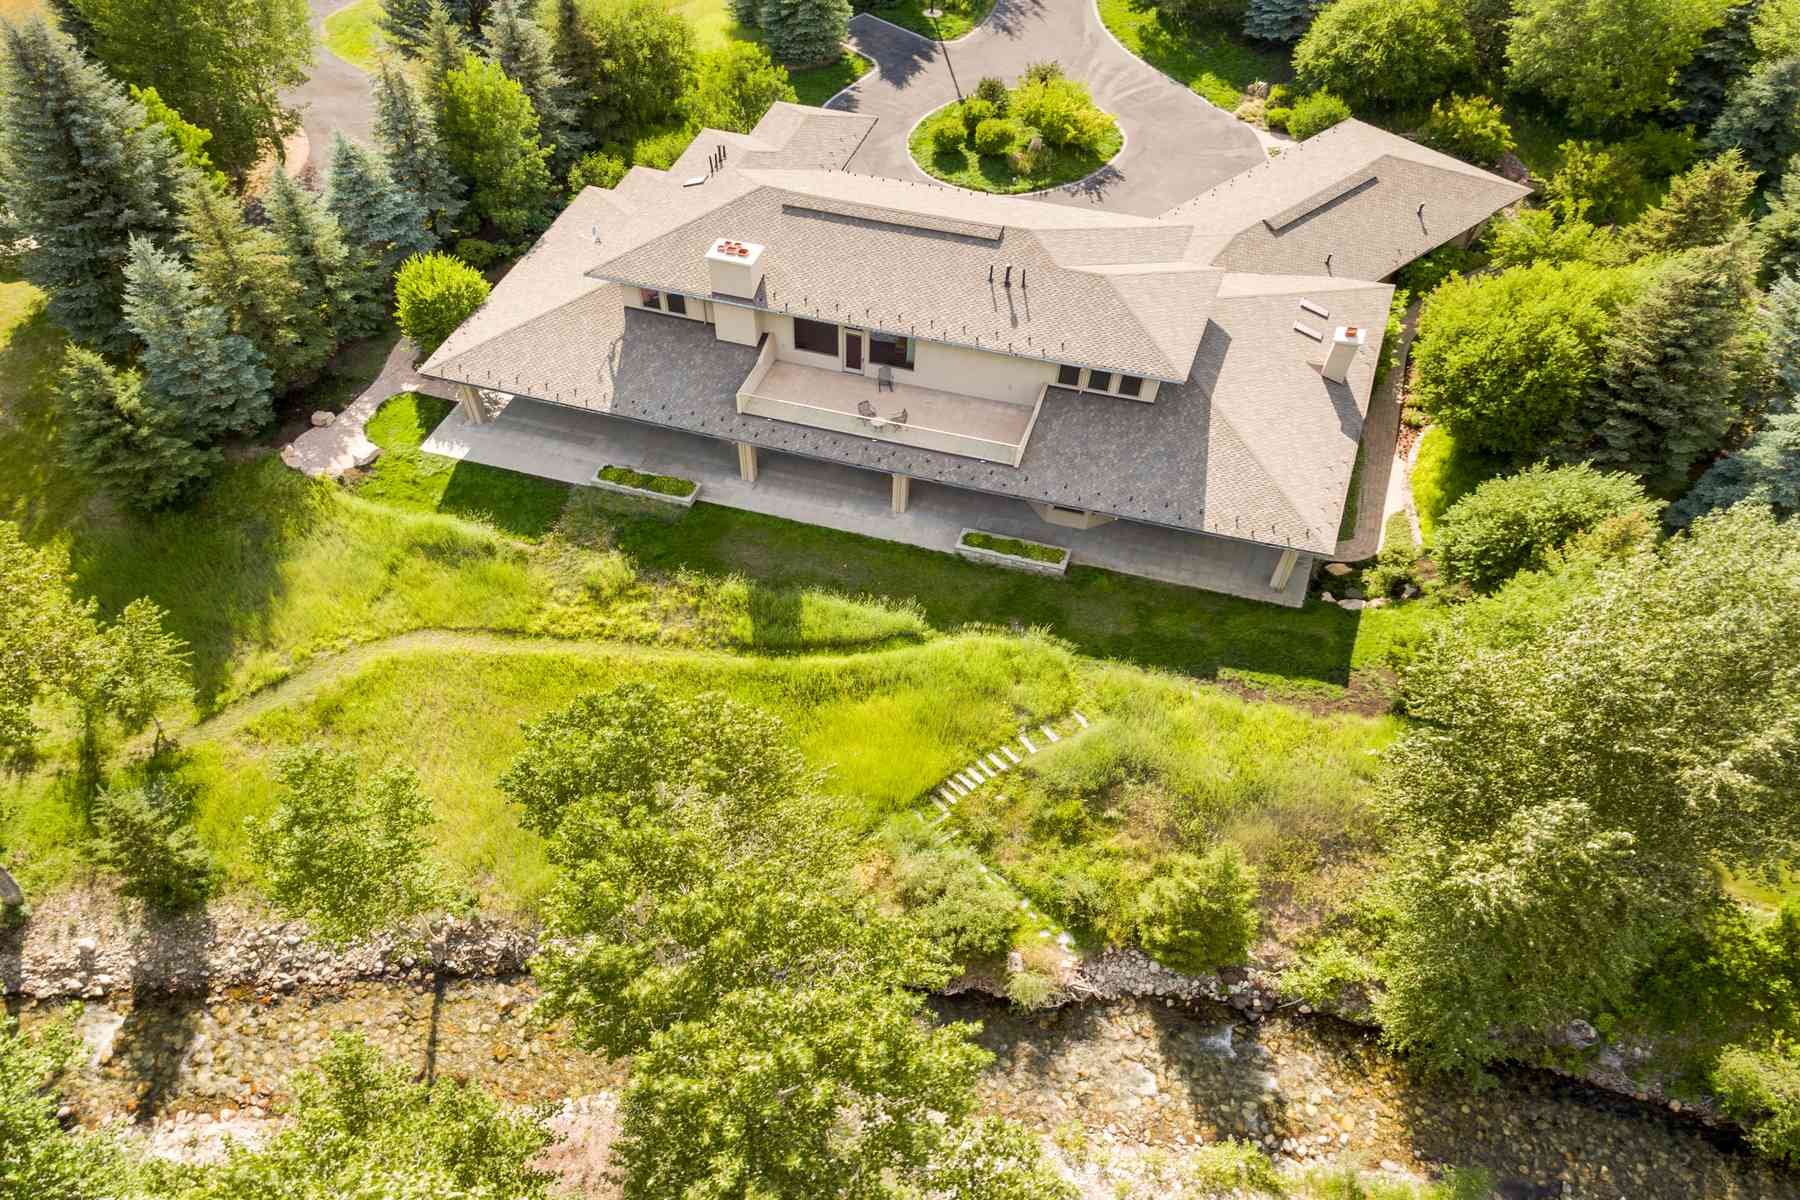 Single Family Home for Sale at One of a kind Contemporary Home 205 Canyon Road Sun Valley, Idaho, 83353 United States